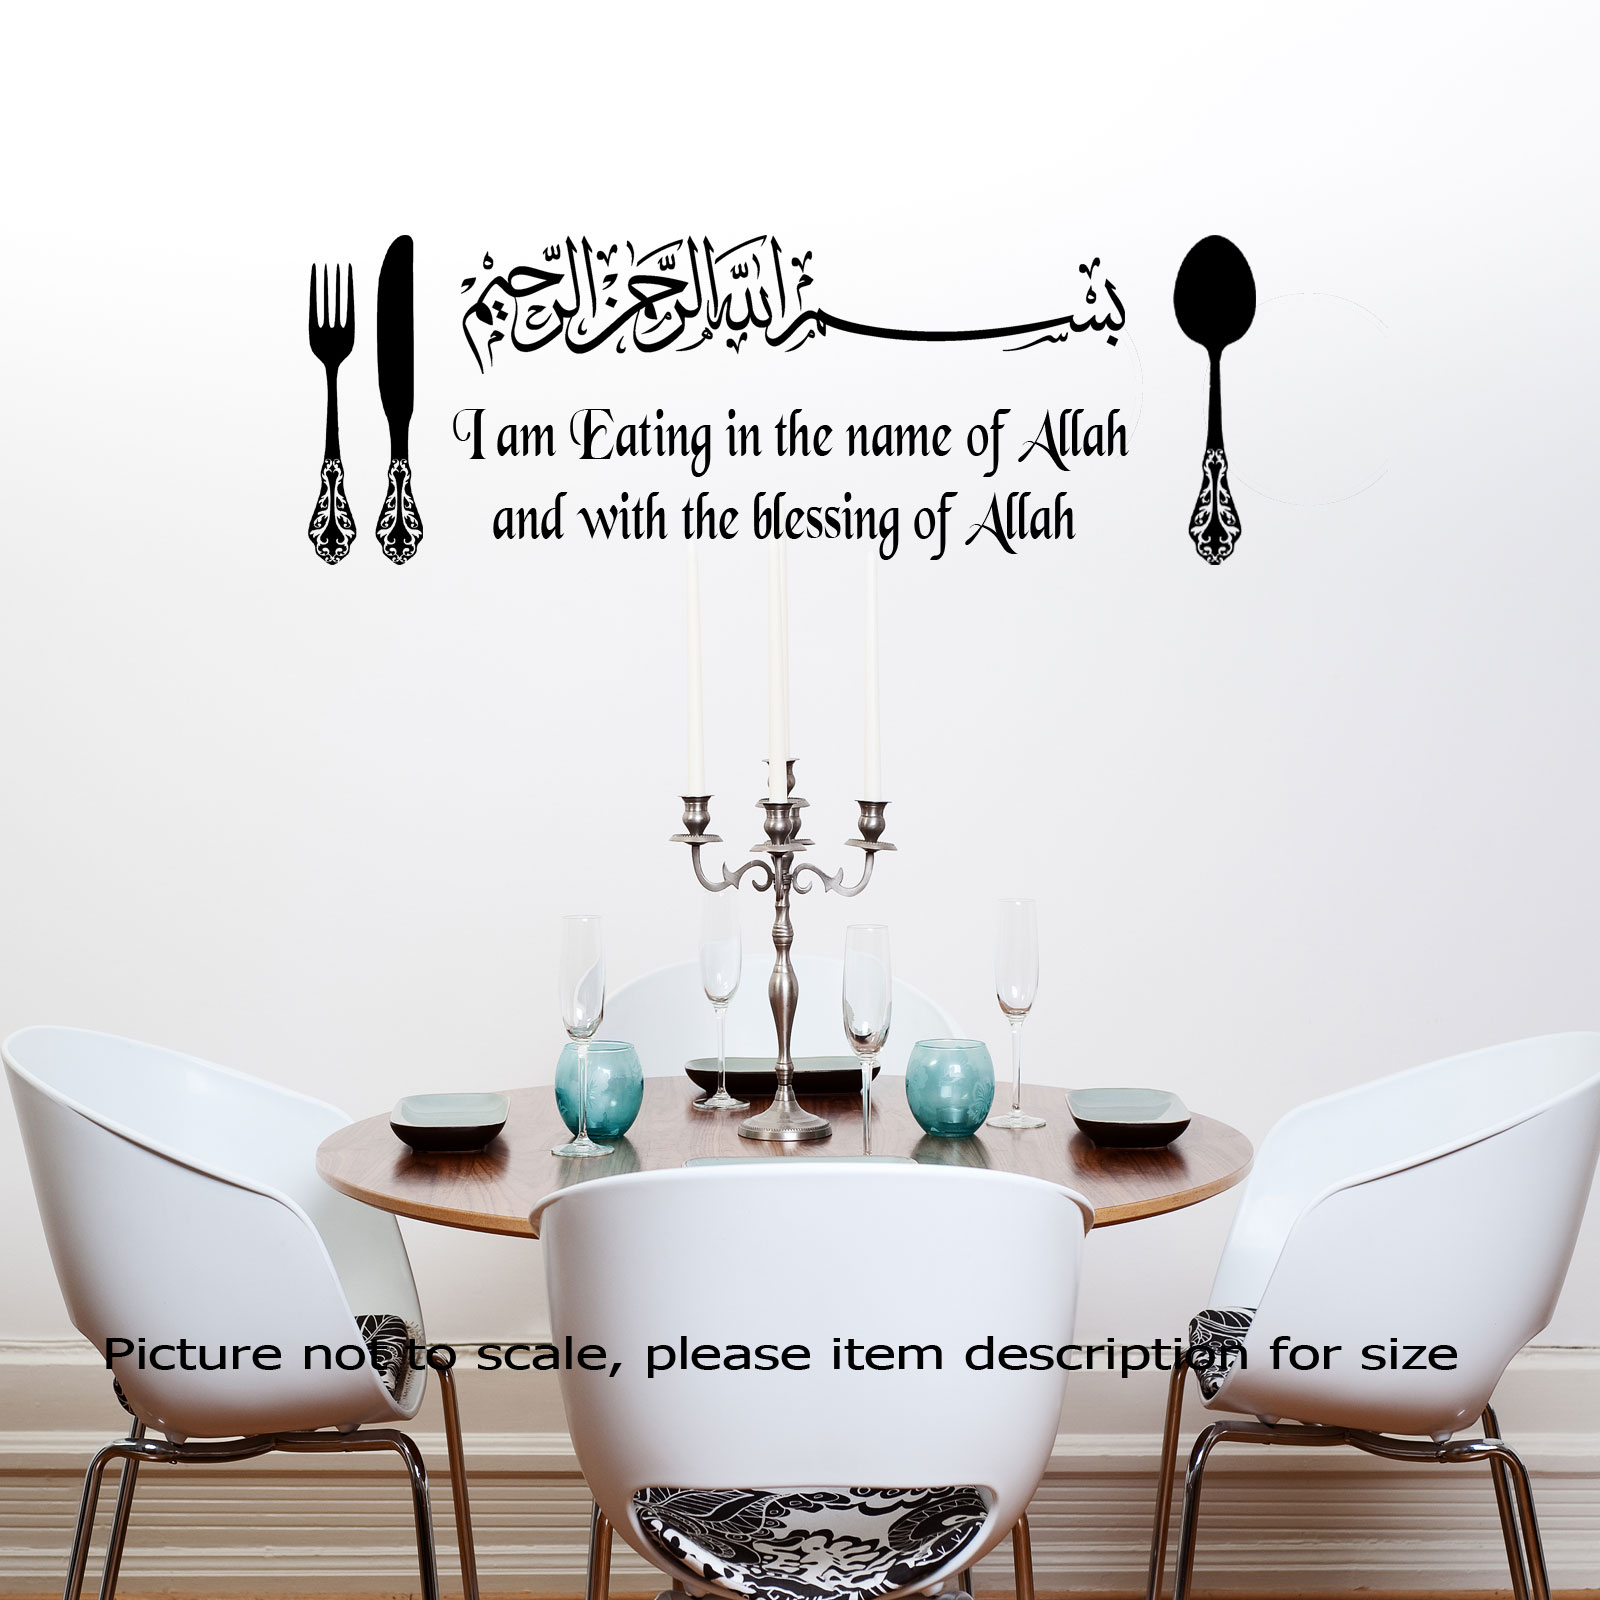 DiningroomislamicwallstickersIameatingwithnameofallah - Wall decals dining room